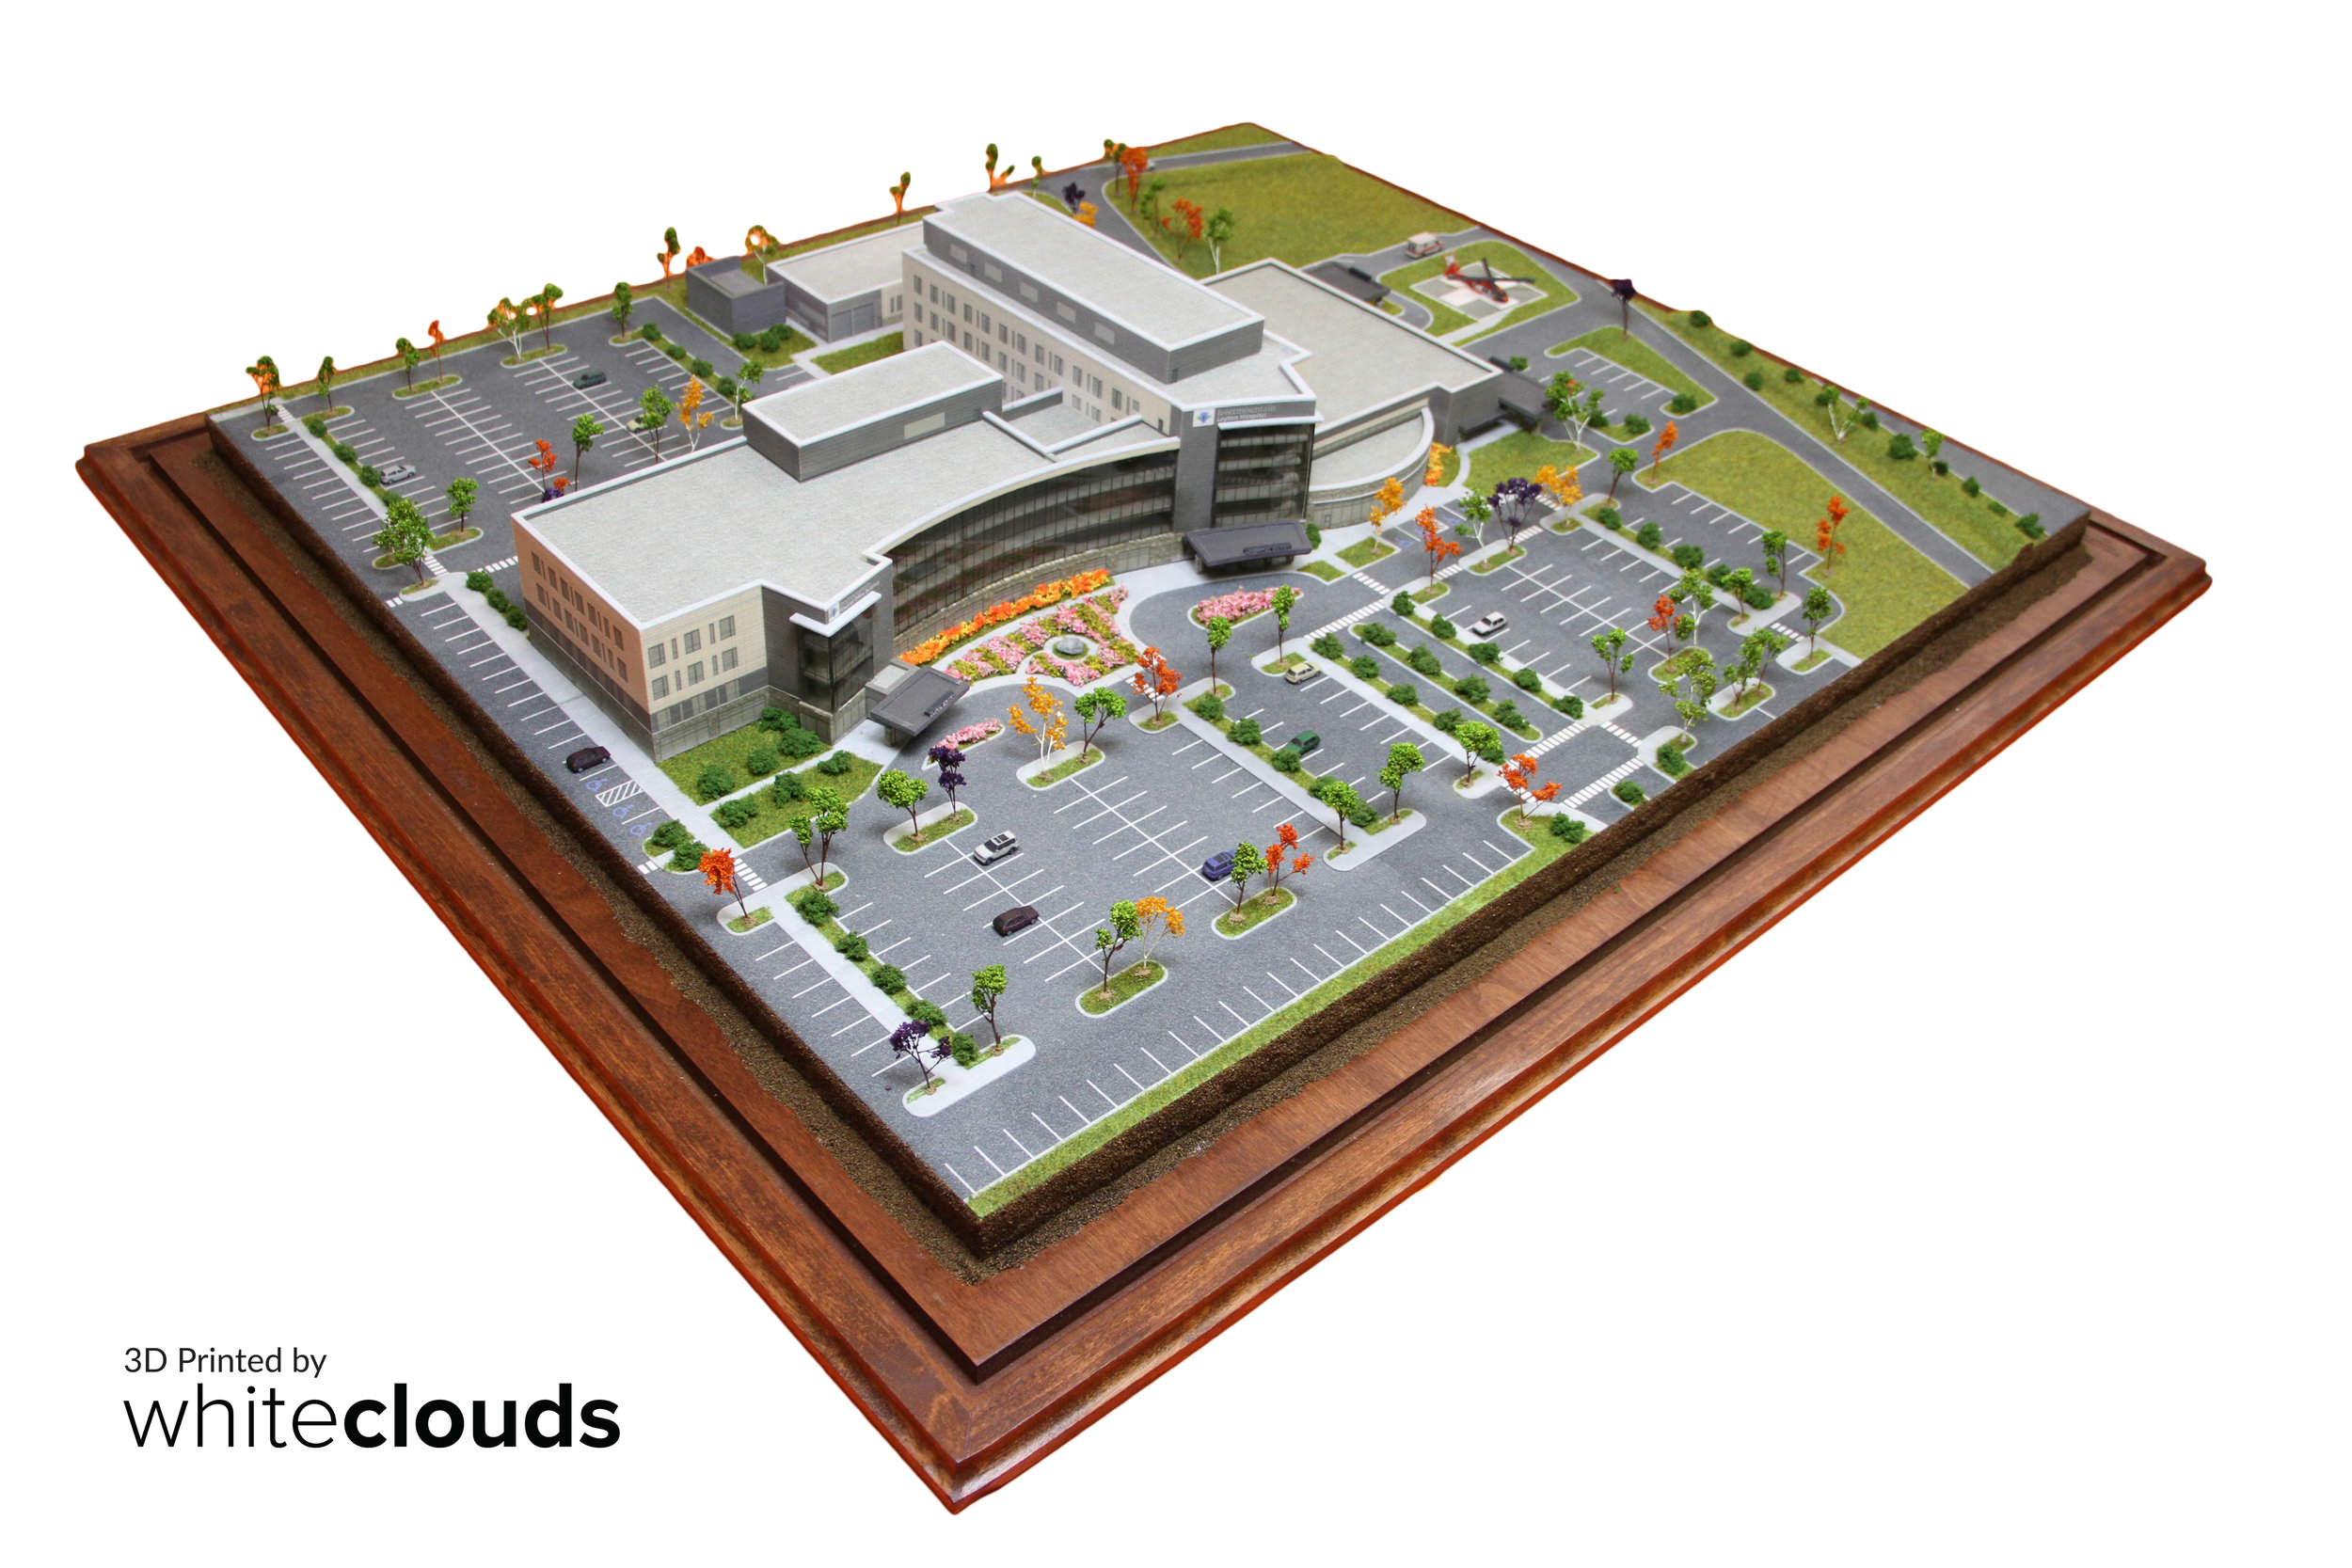 3D-Printed-WhiteClouds-Hospital-Architecture-Layton-Hospital-2.JPG